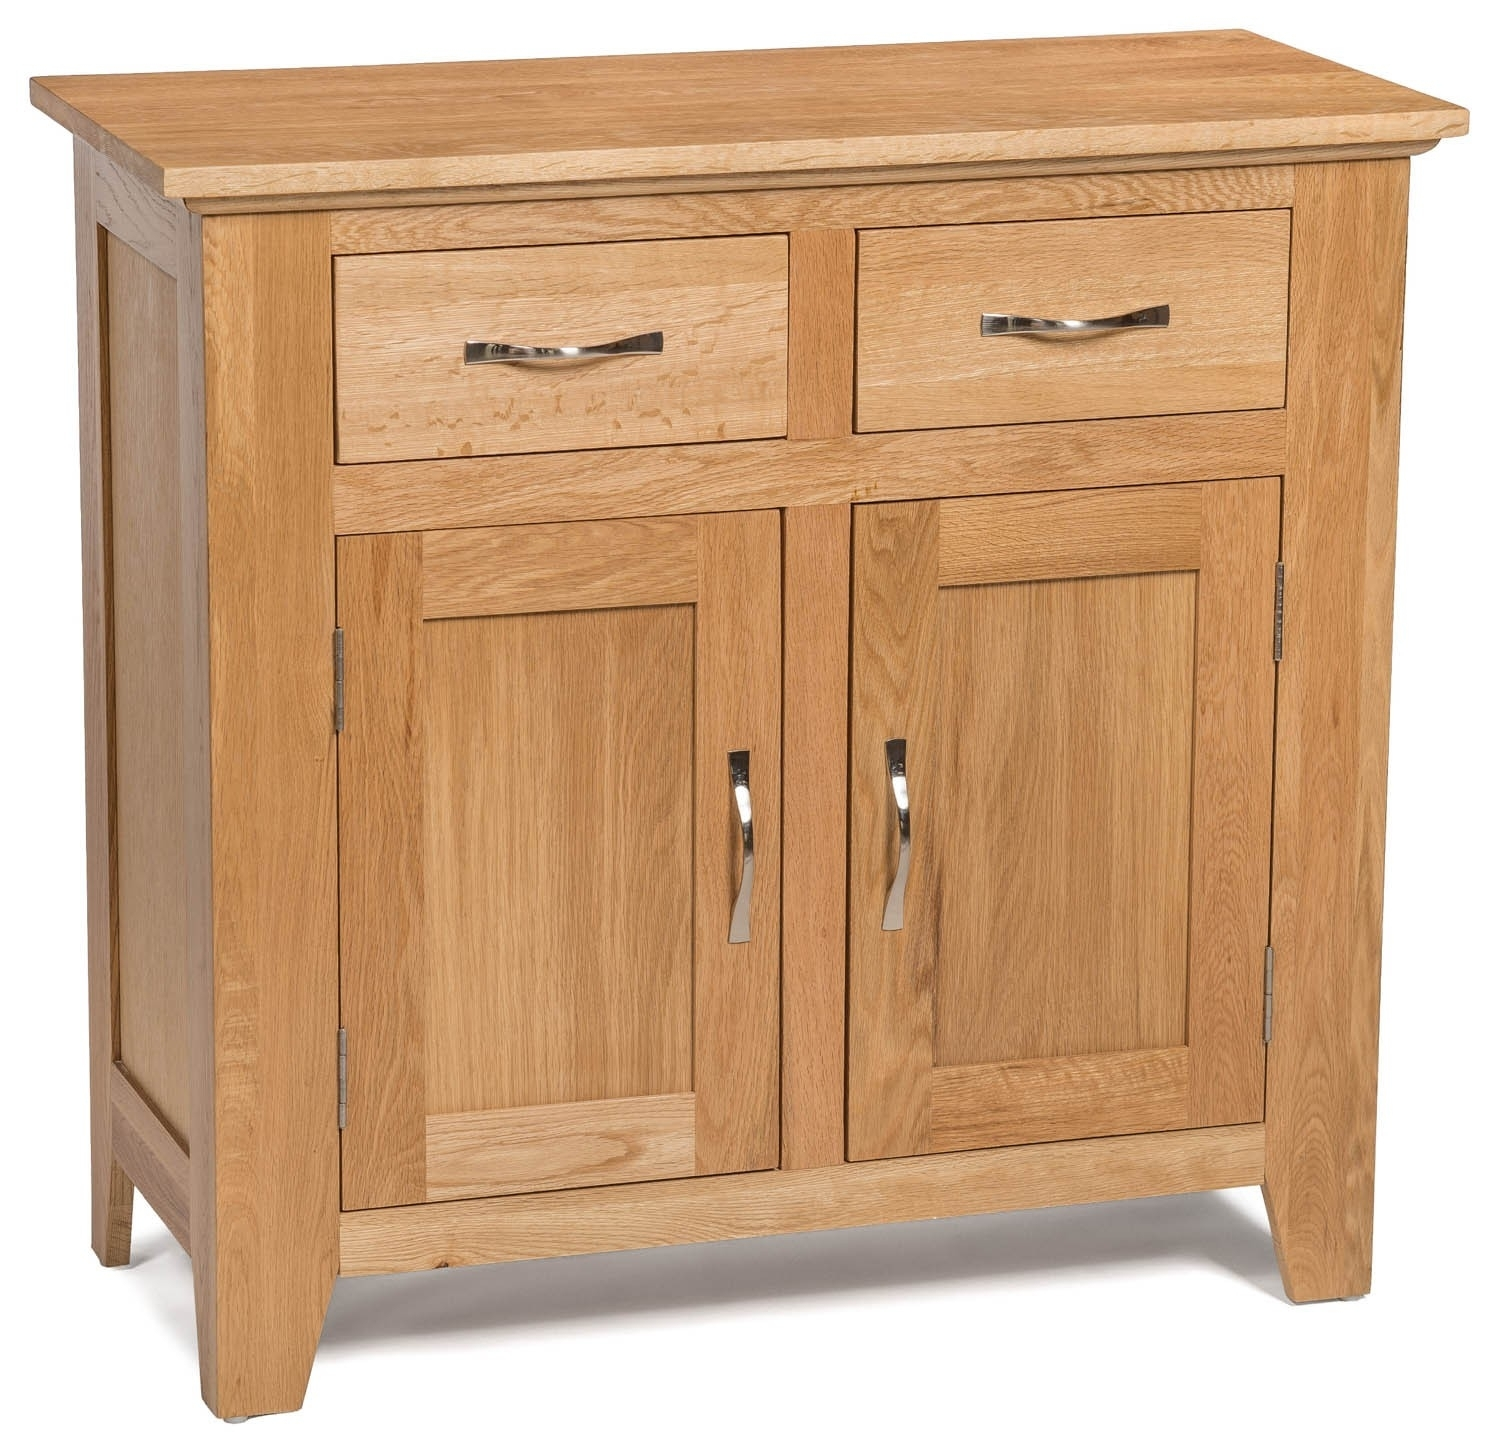 Camberley Oak Small 2 Door 2 Drawer Sideboard – Sideboards & Tops In 2018 Antique White Distressed 3 Drawer/2 Door Sideboards (#5 of 20)